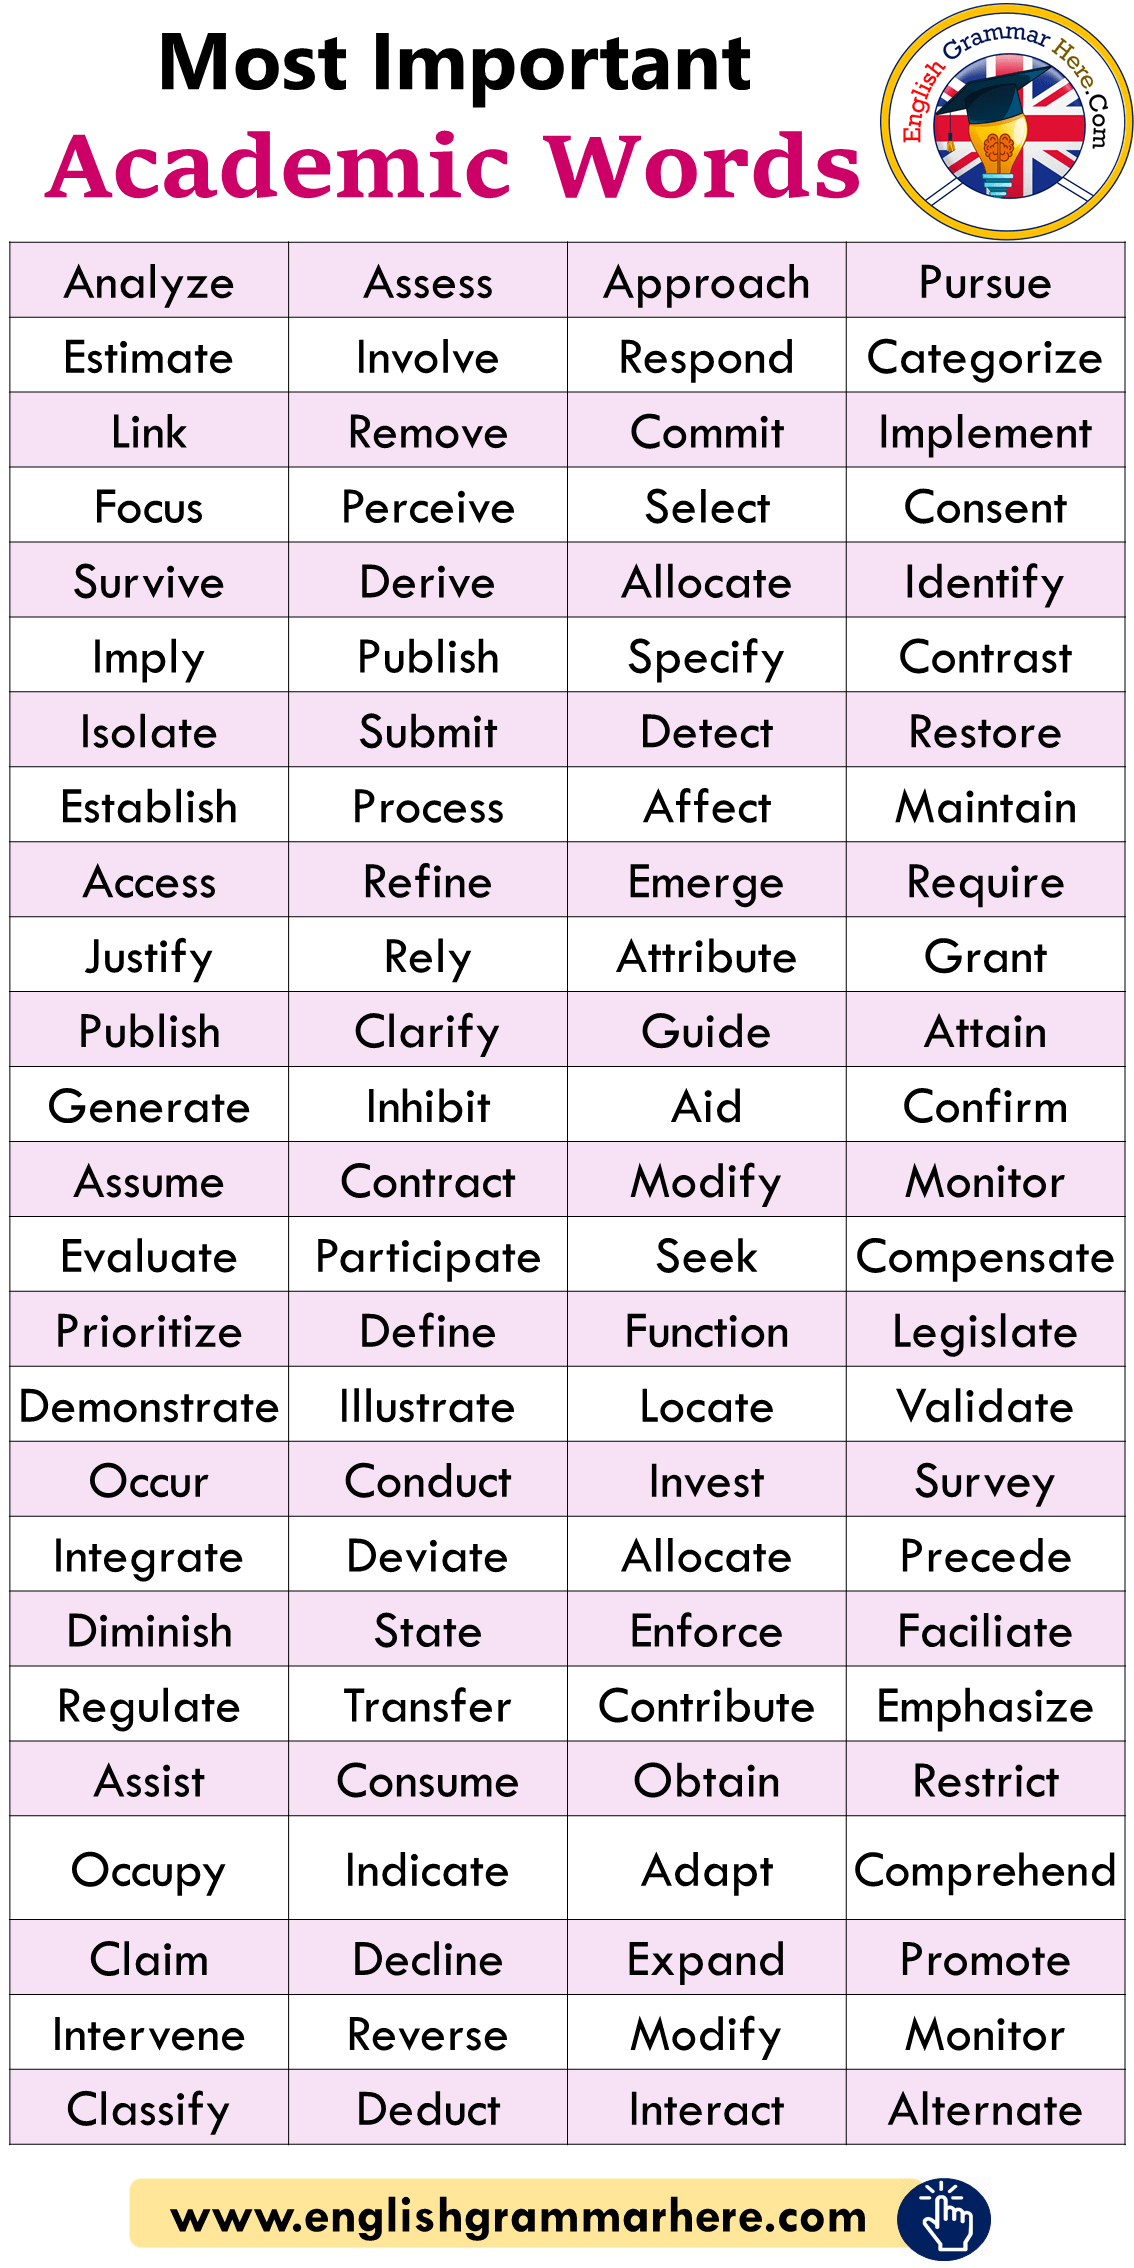 English Most Important Academic Words List